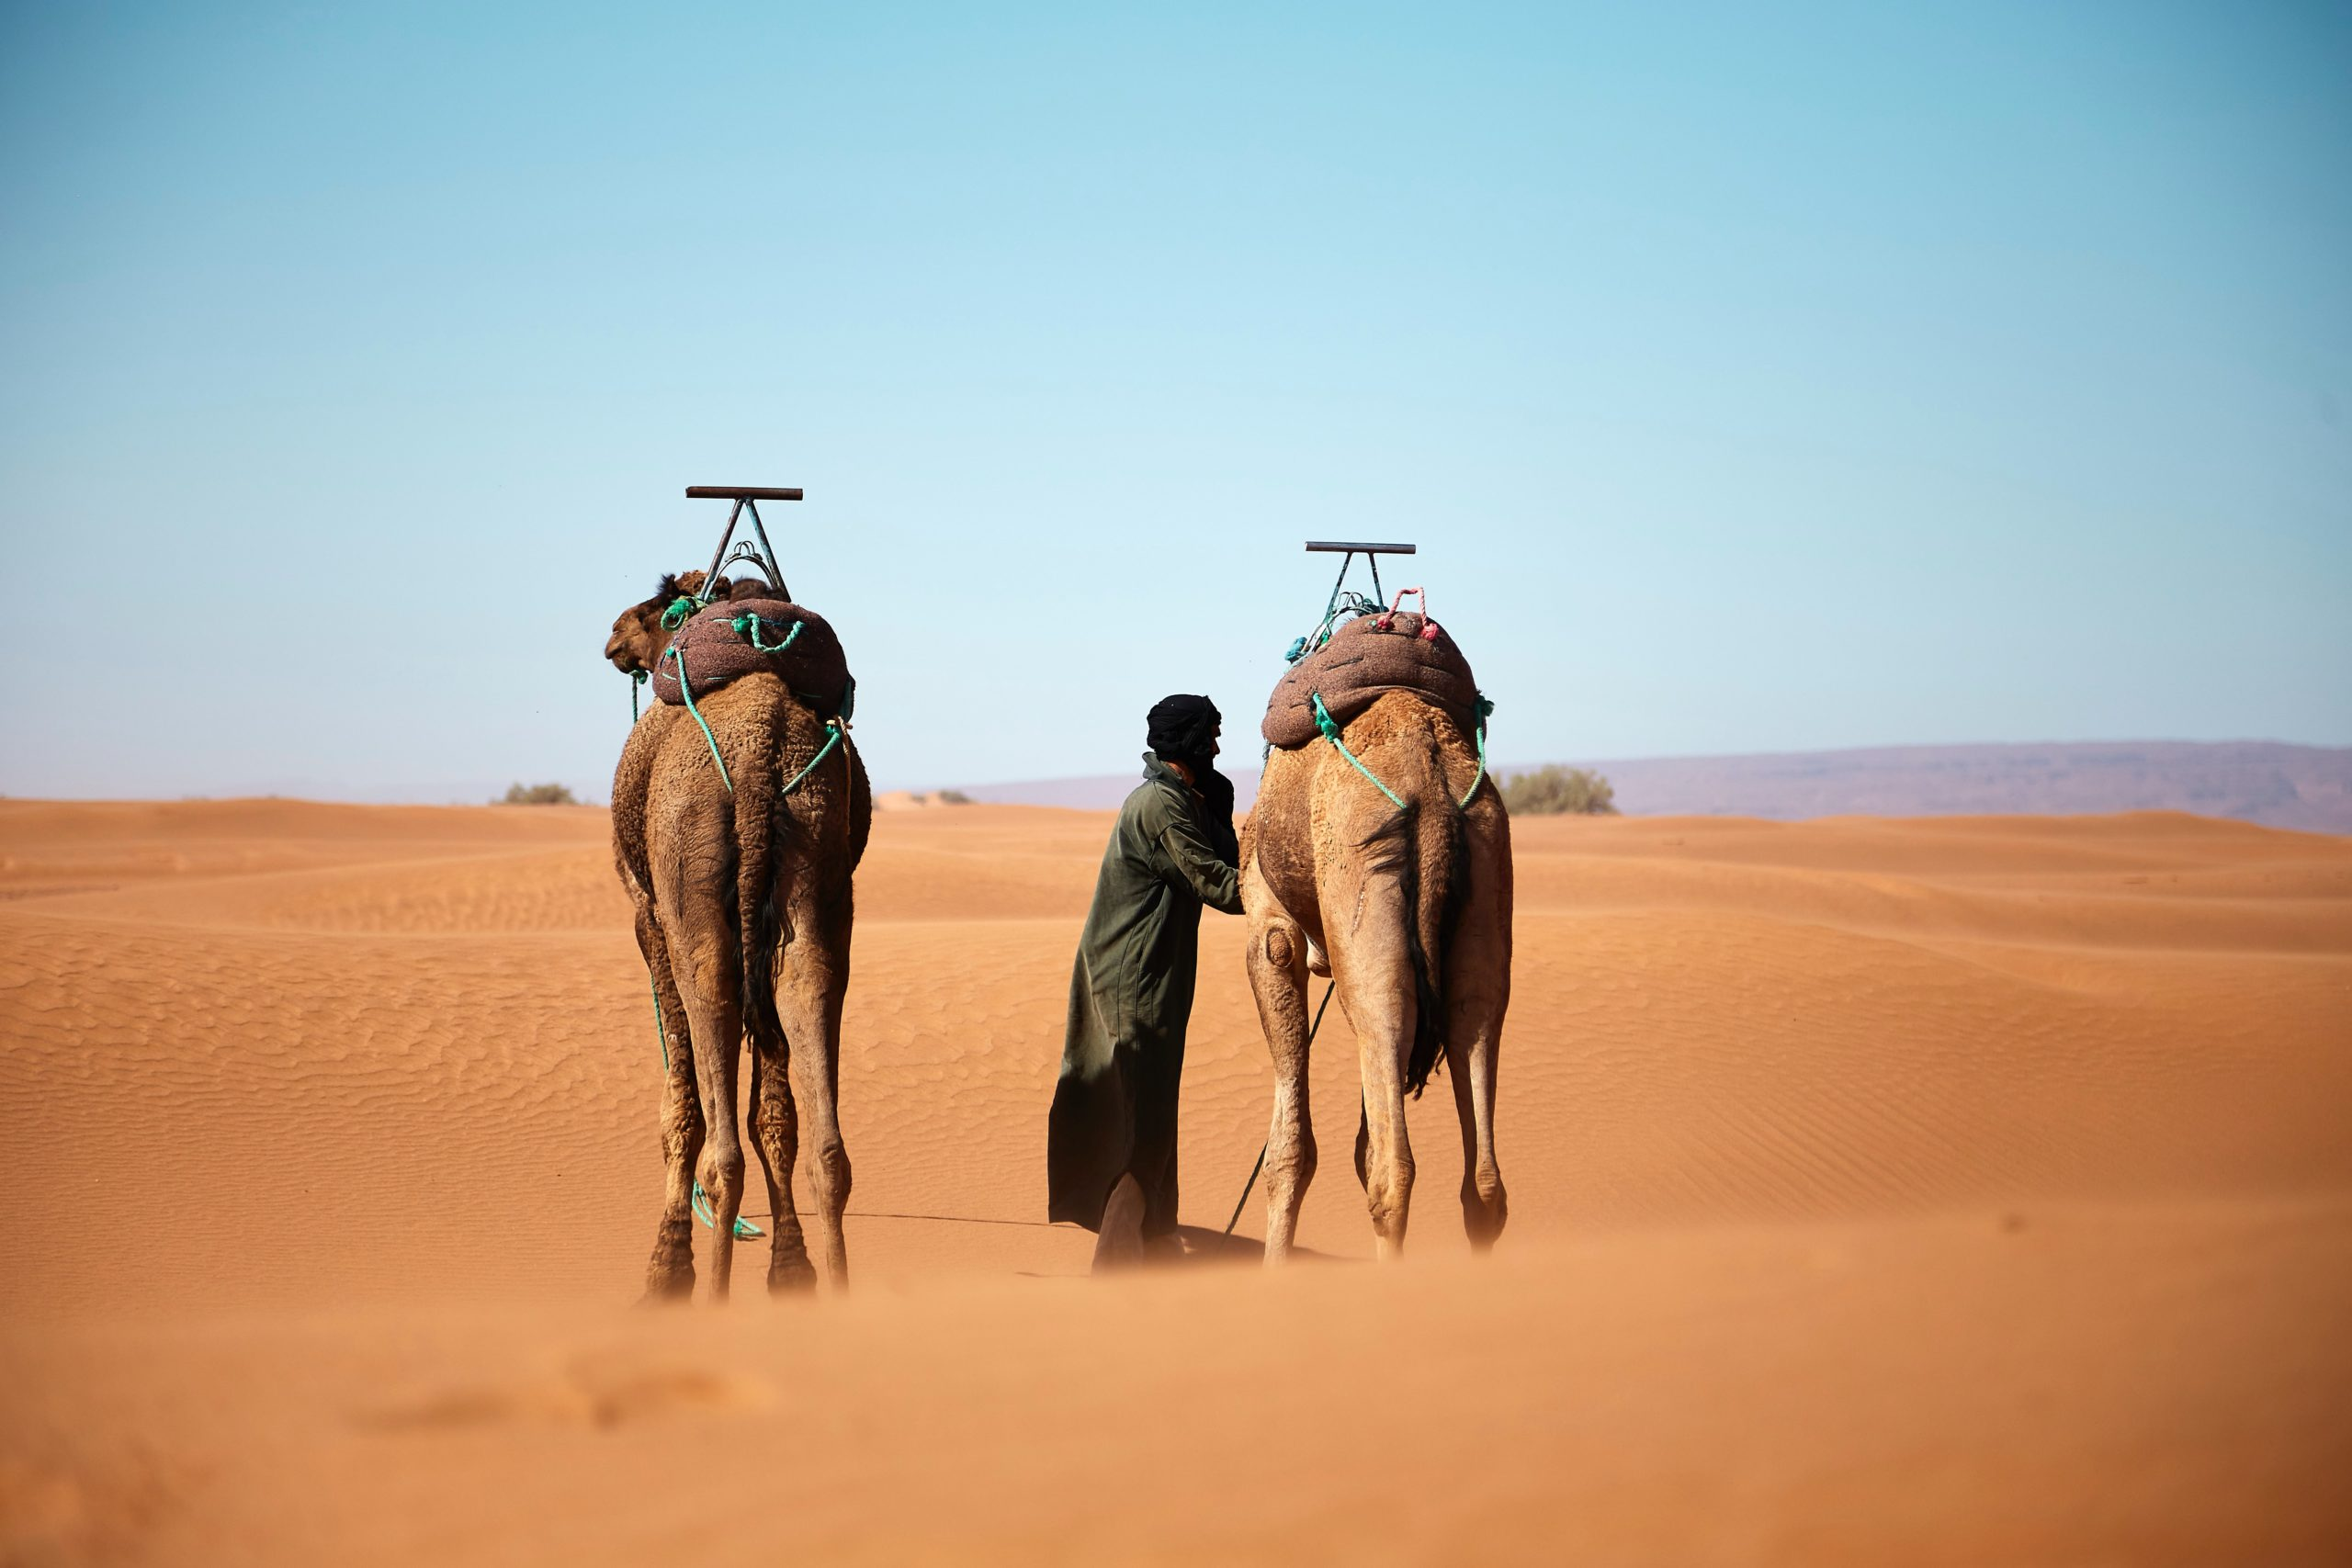 Two saddled camels walk into the vast sand dune landscape of the Sahara Desert with their robe clothed handler